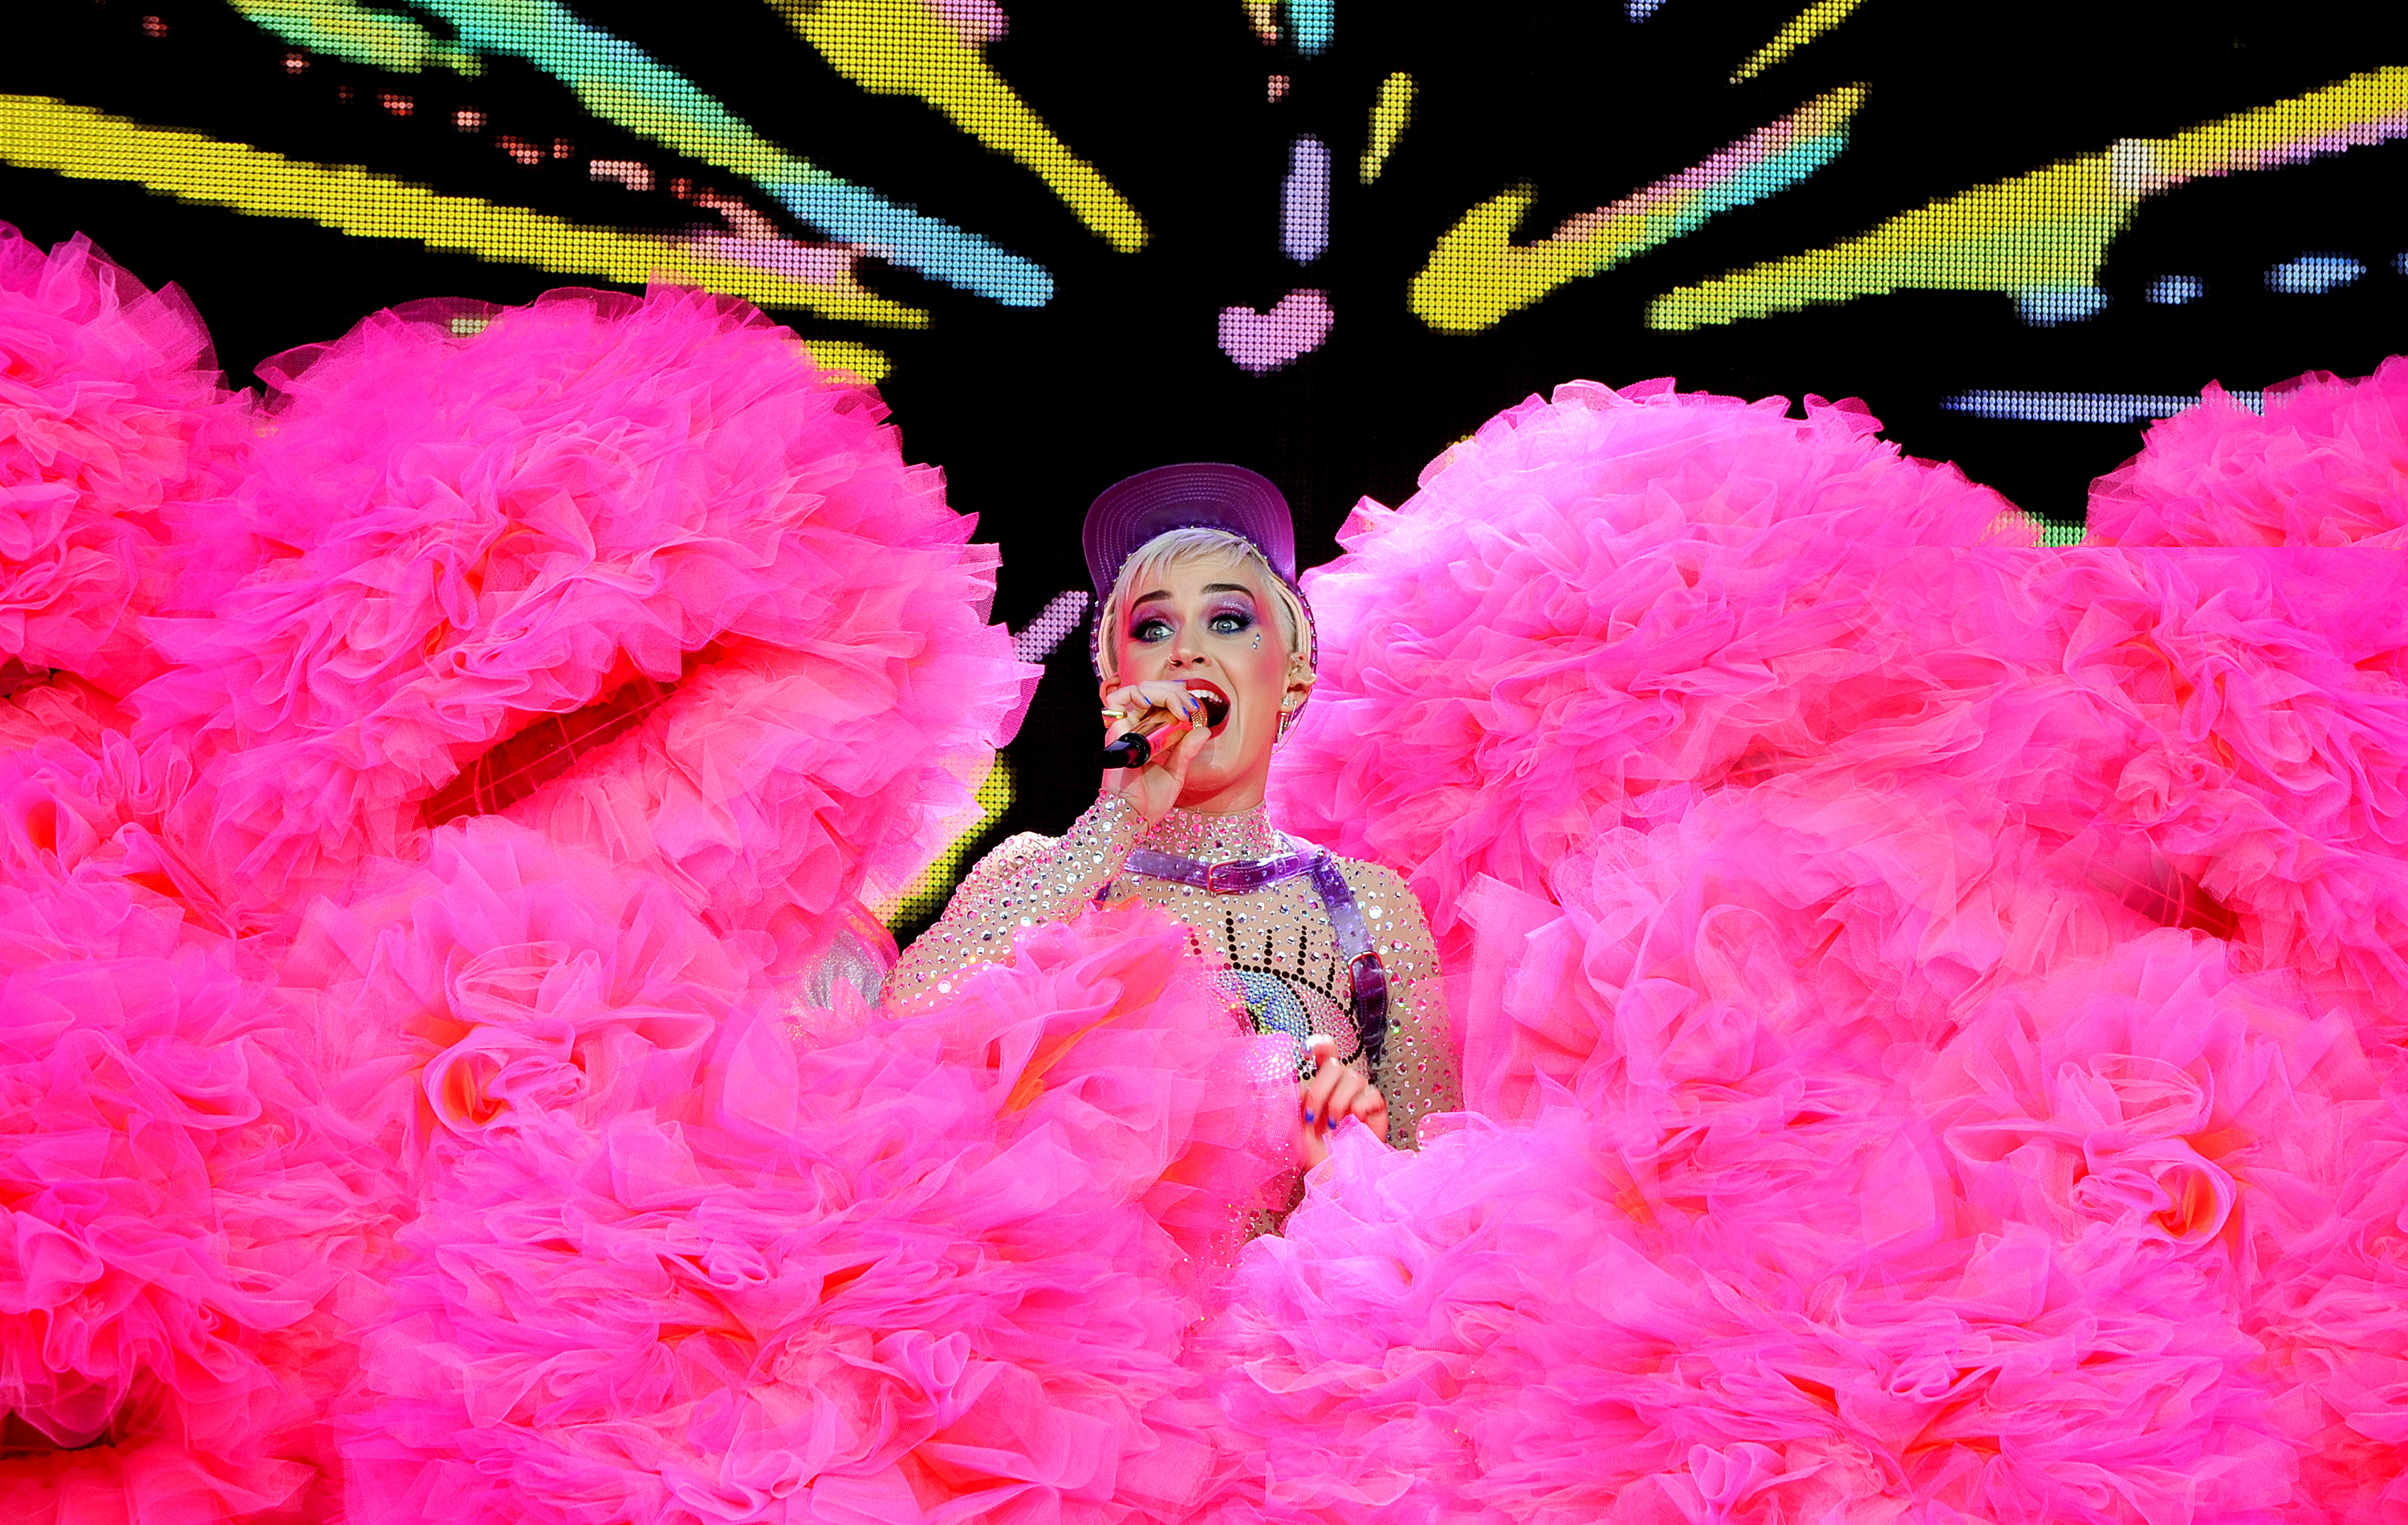 Katy Perry performs on the pyramid stage on day 3 of the Glastonbury Festival 2017 at Worthy Farm, Pilton on June 24, 2017 in Glastonbury, England.